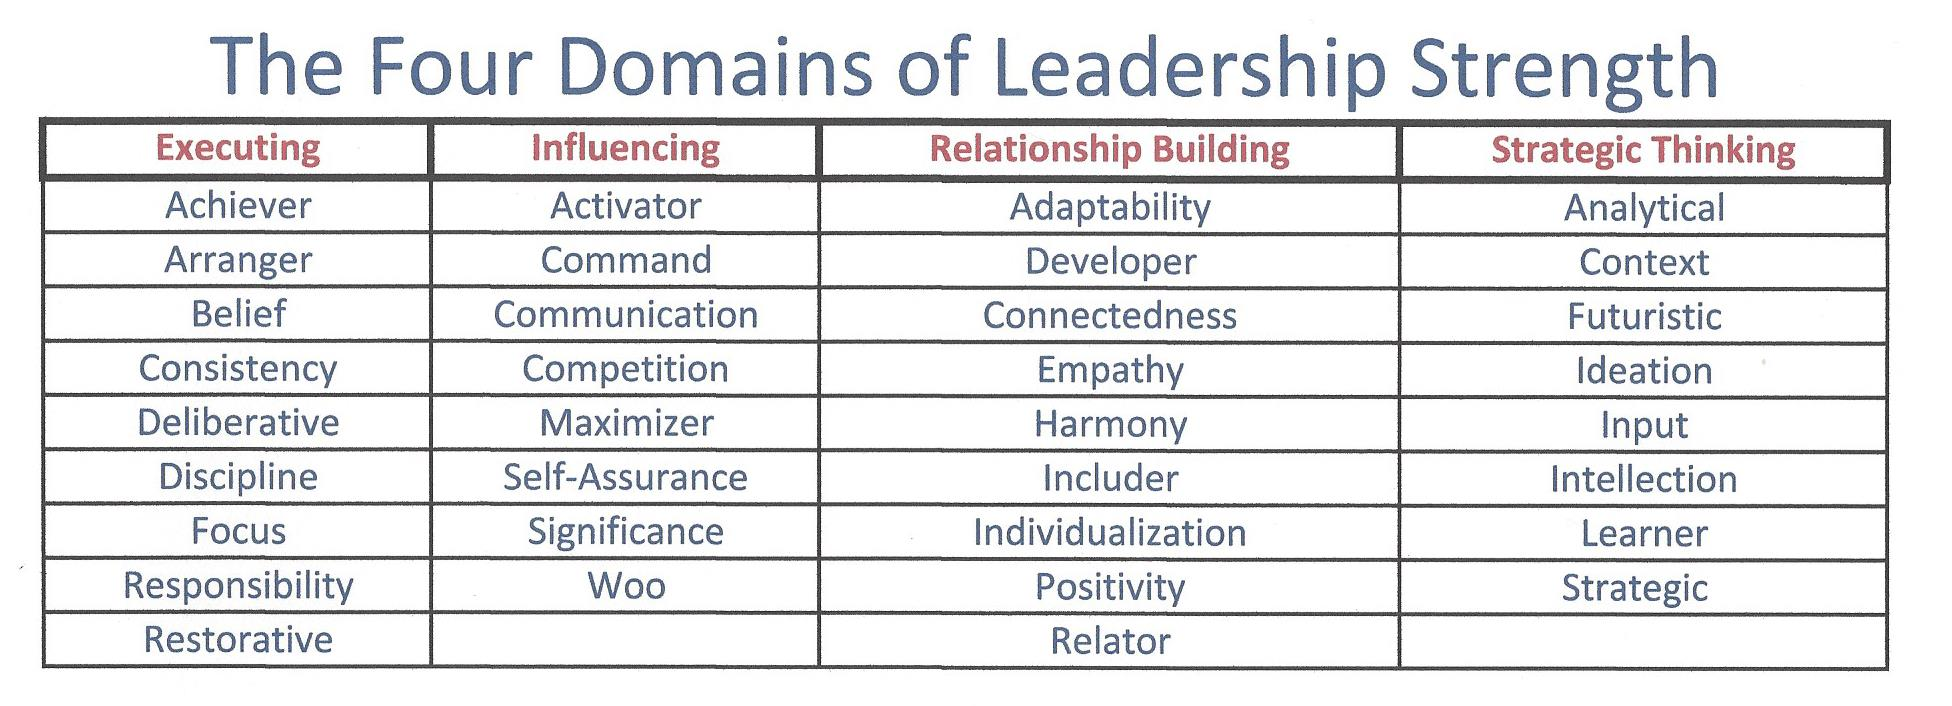 Four_Domains_of_Leadership_Strengths_Strengths_Based_Leadershi